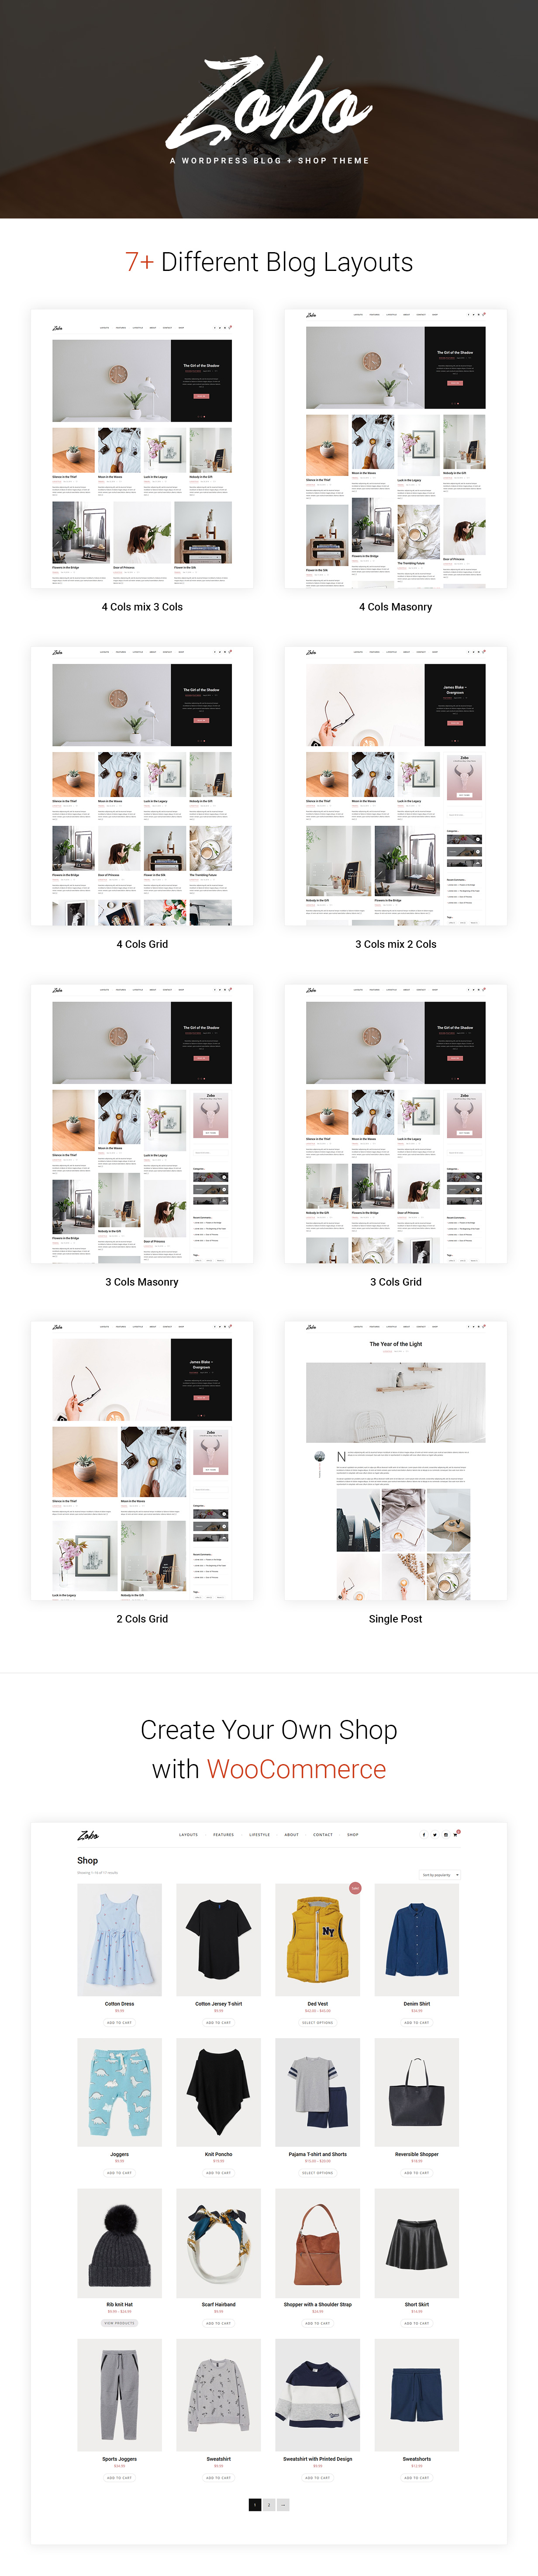 Zobo - A WordPress Blog and Shop Theme - 1